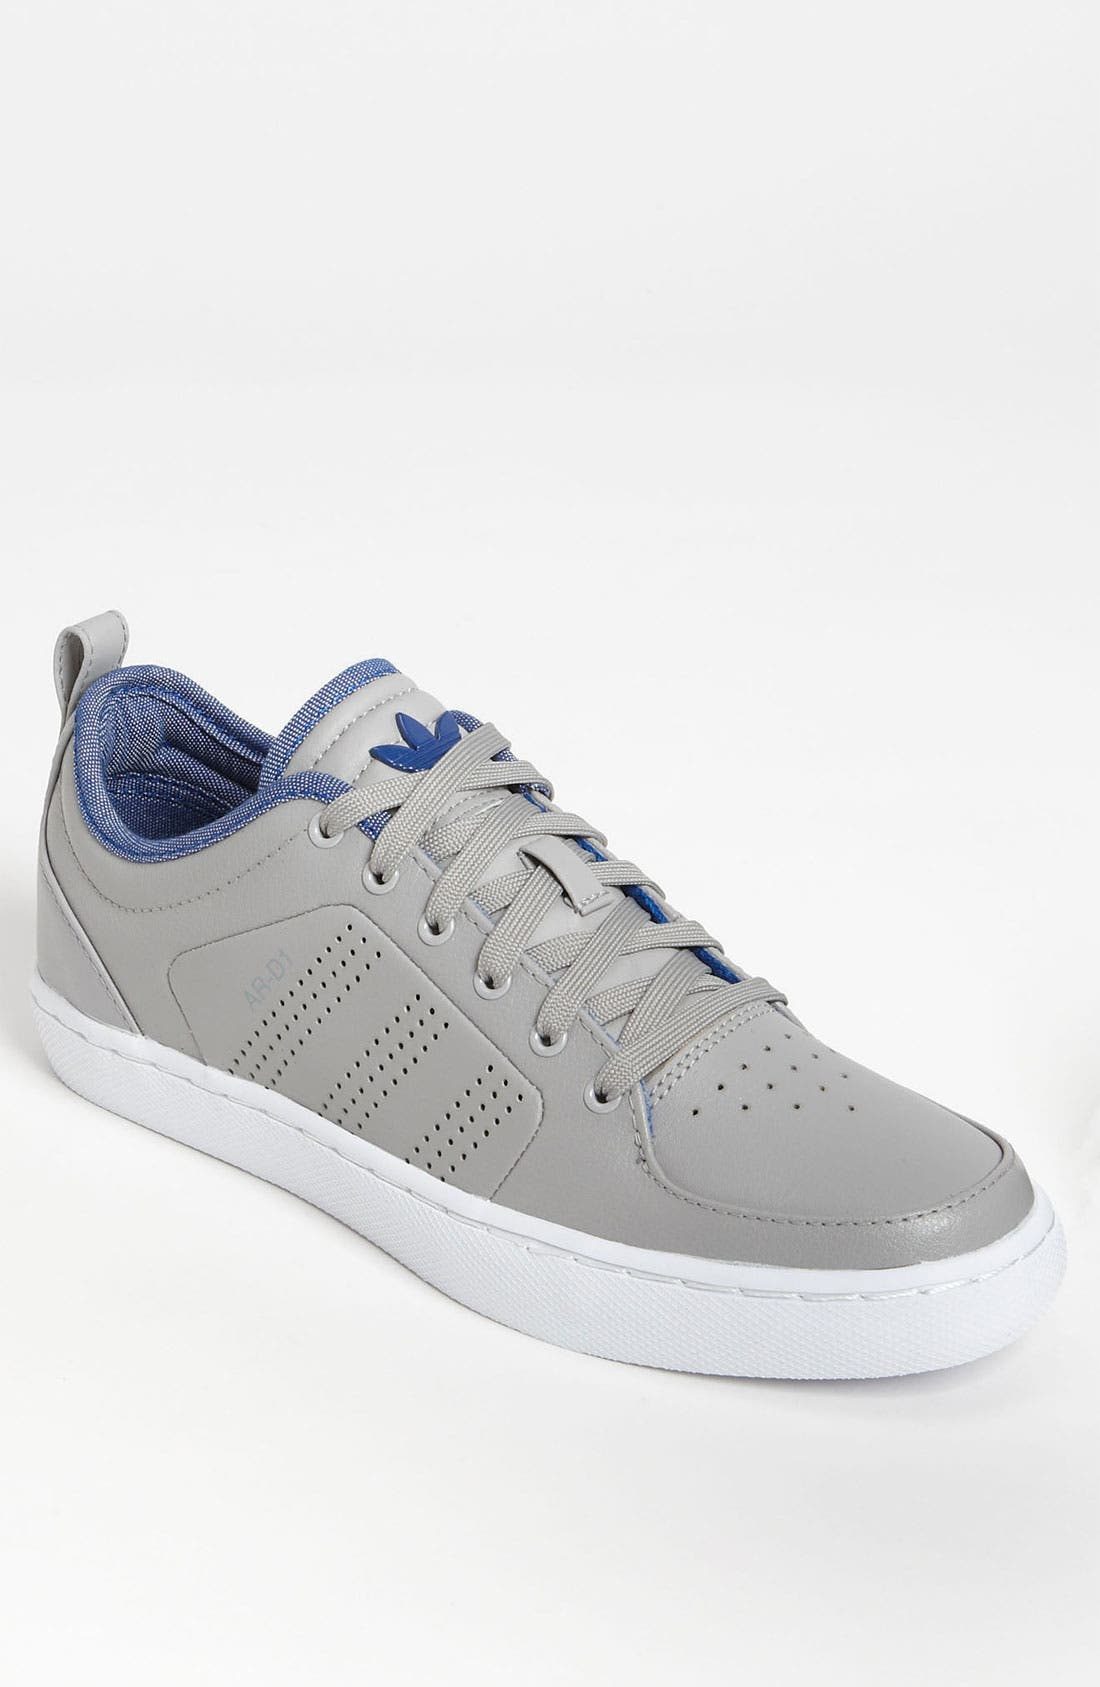 Main Image - adidas 'AR-D1 Low' Sneaker (Men) (Online Only)